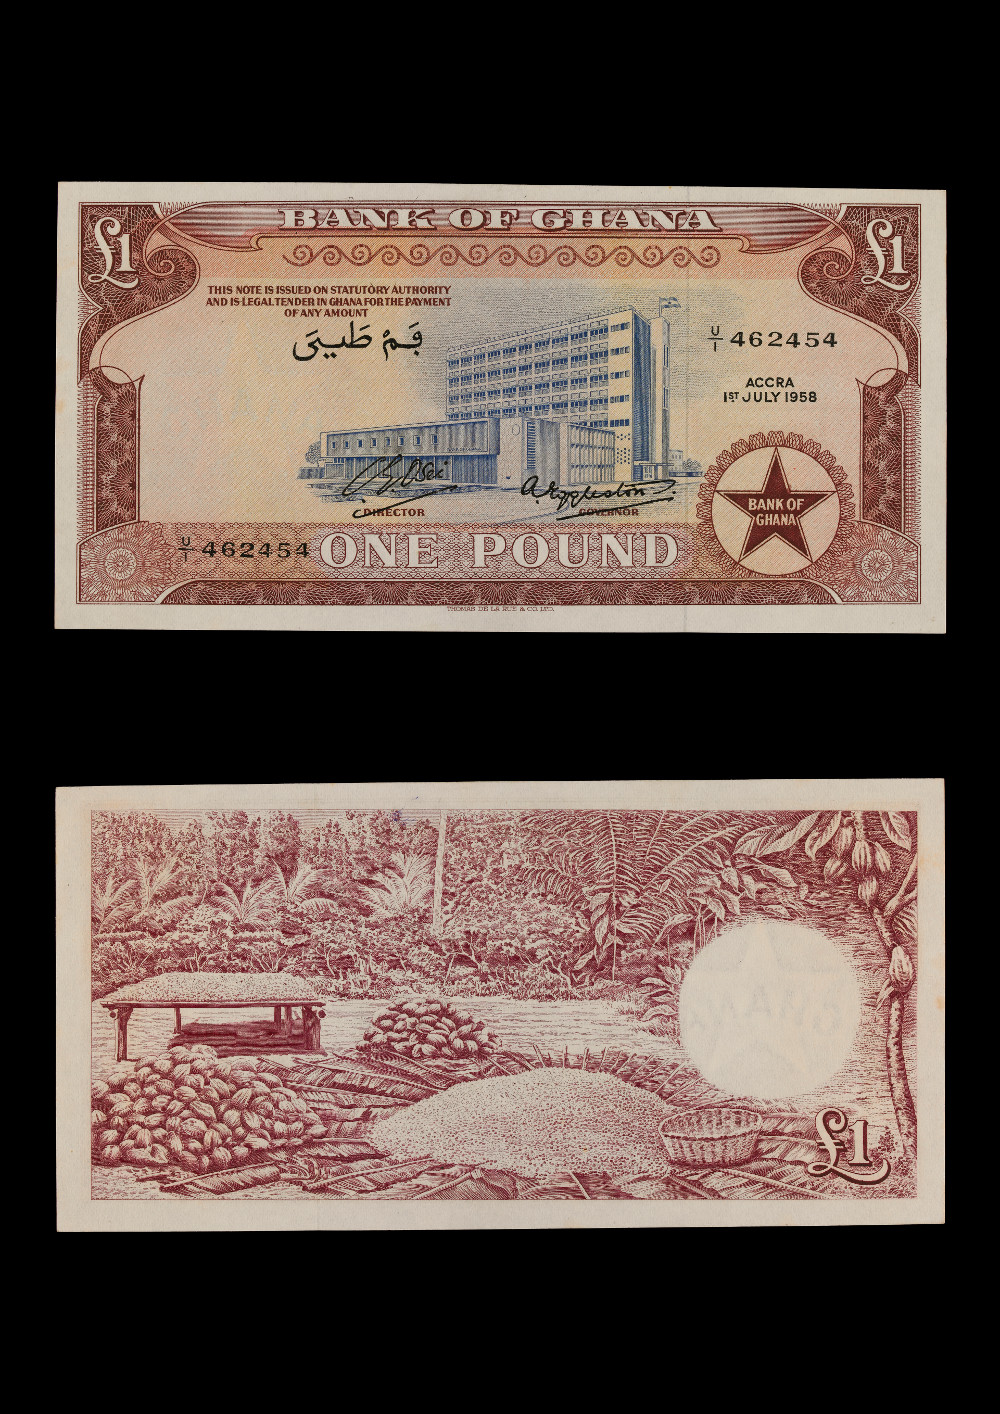 Ghanaian banknotes: One Pound - PaperAD 1958GhanaBritish Museum